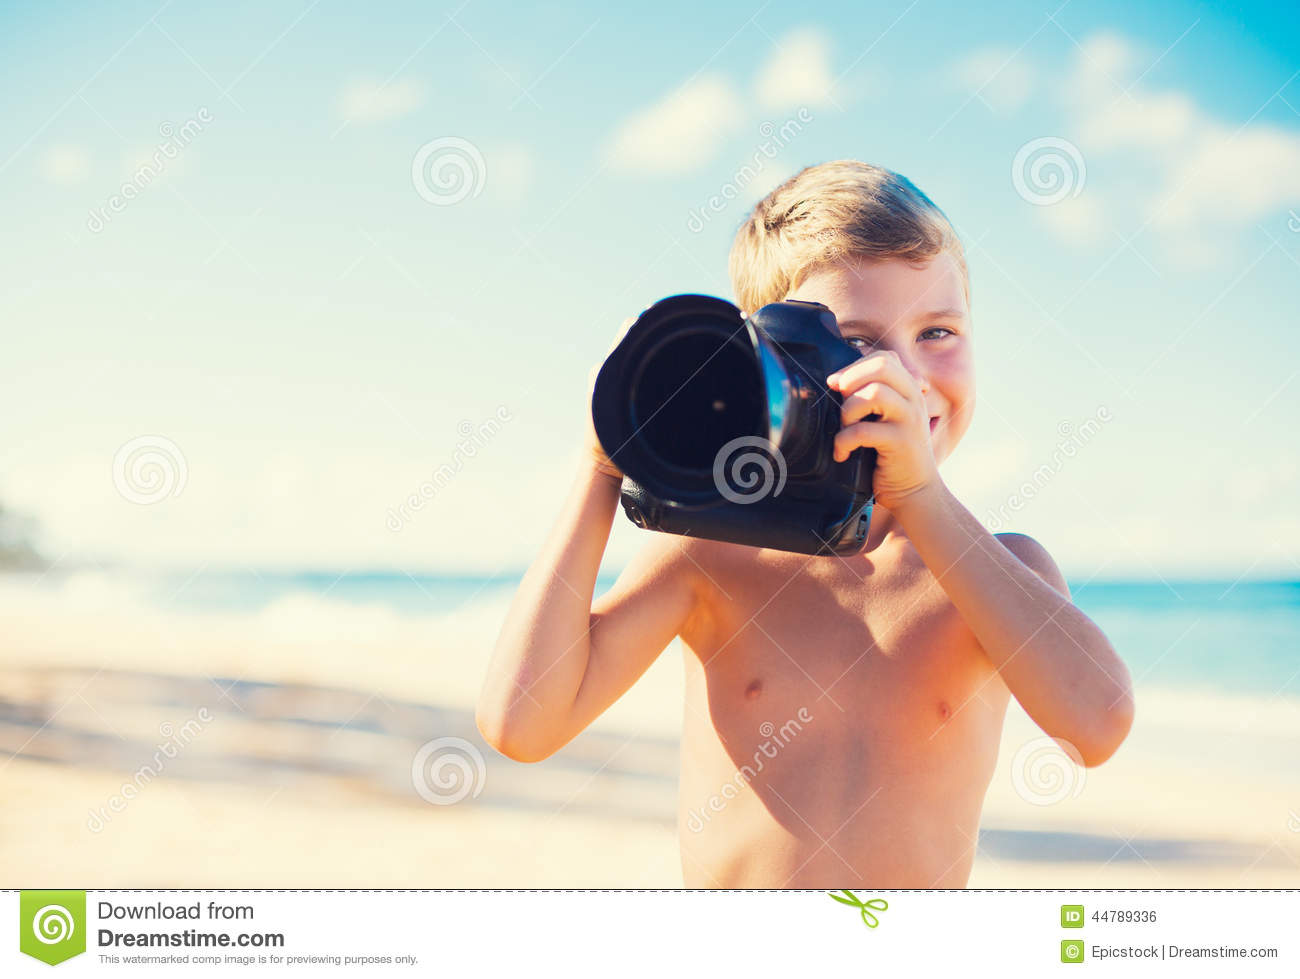 Boy On The Beach With Camera Stock Photo - Image: 44789338